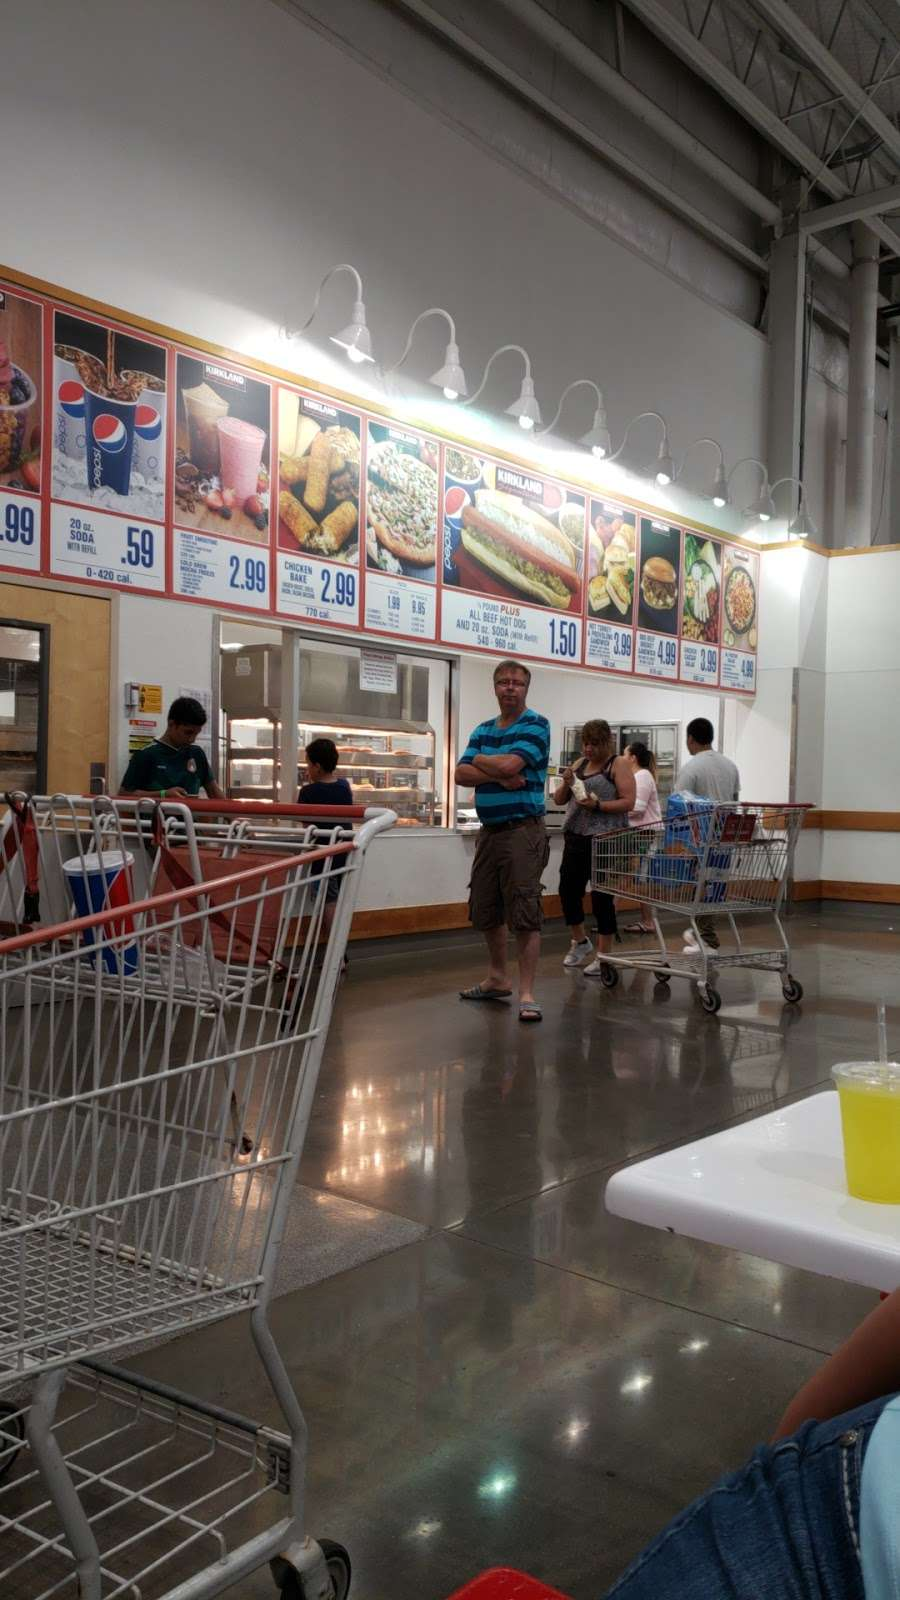 Costco Food Court - meal takeaway  | Photo 1 of 3 | Address: 8400 W North Ave, Melrose Park, IL 60160, USA | Phone: (708) 397-2905